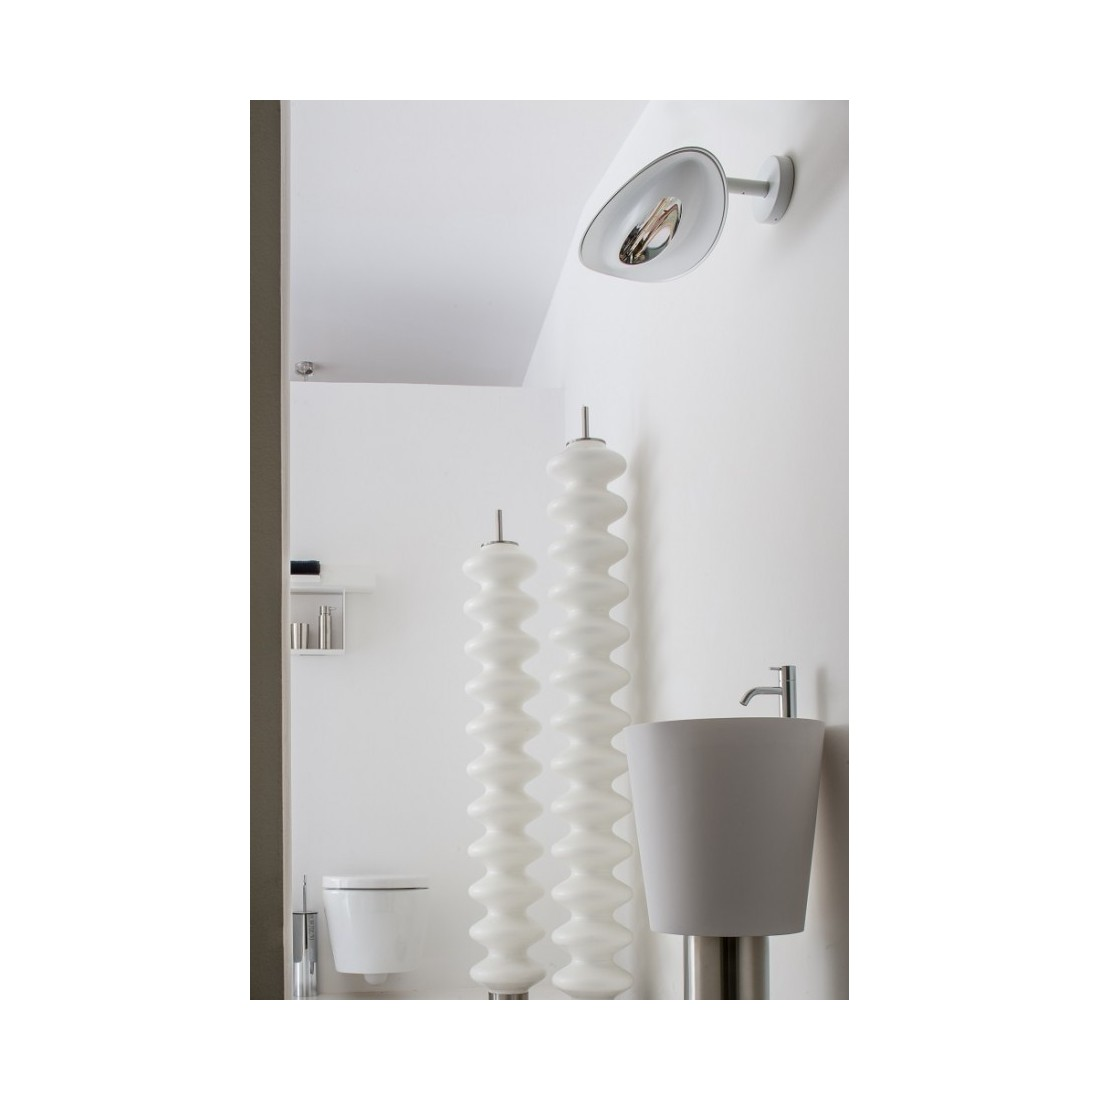 Lampe chauffante infrarouge applique murale phormalab for Support applique murale